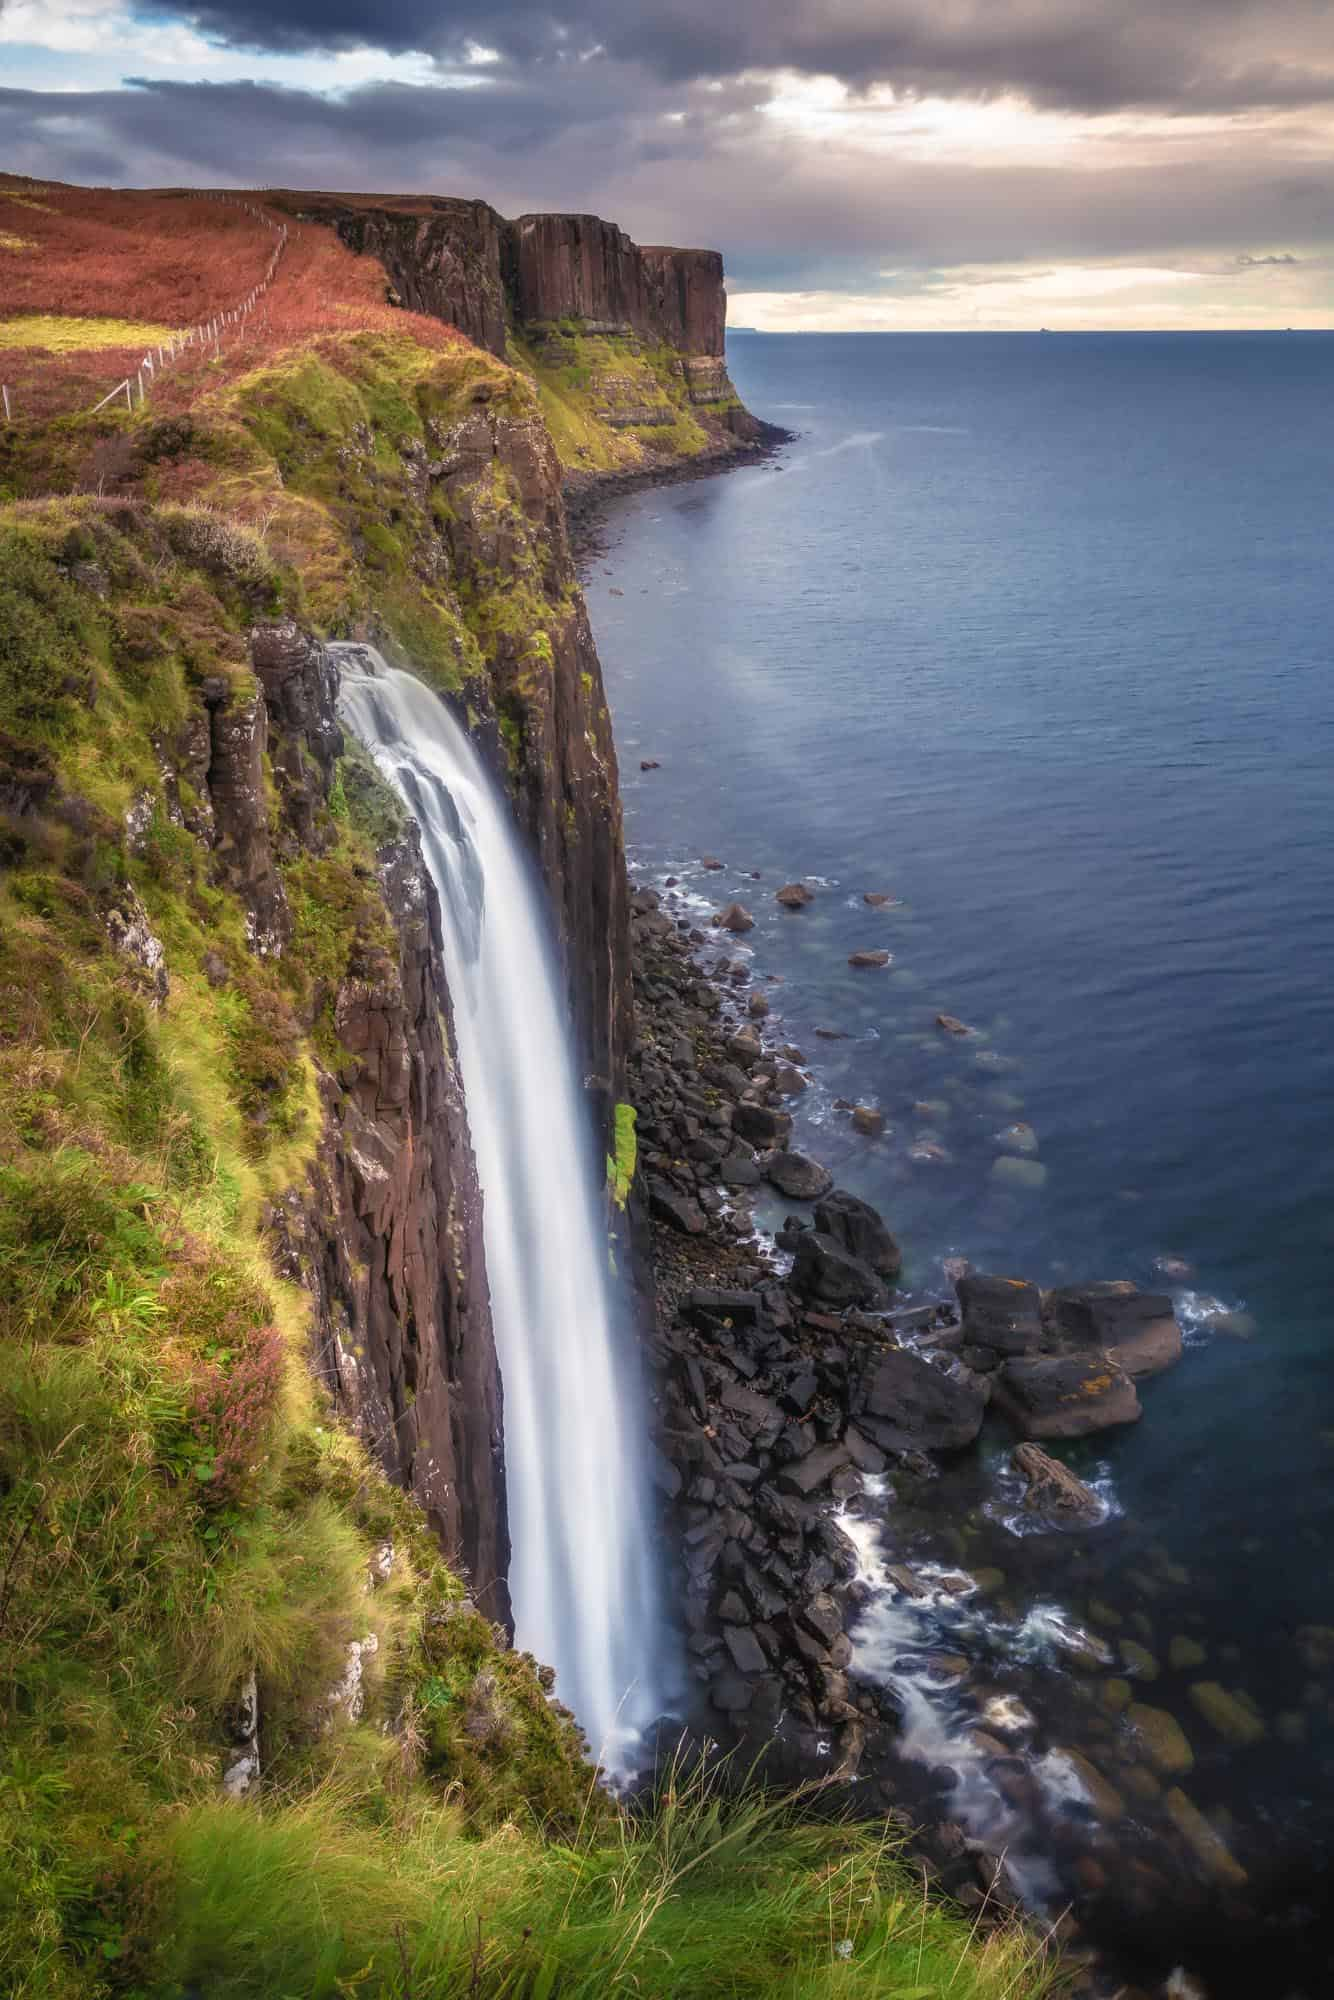 The view of Mealt Falls at Kilt Rock during golden hour on the Isle of Skye.